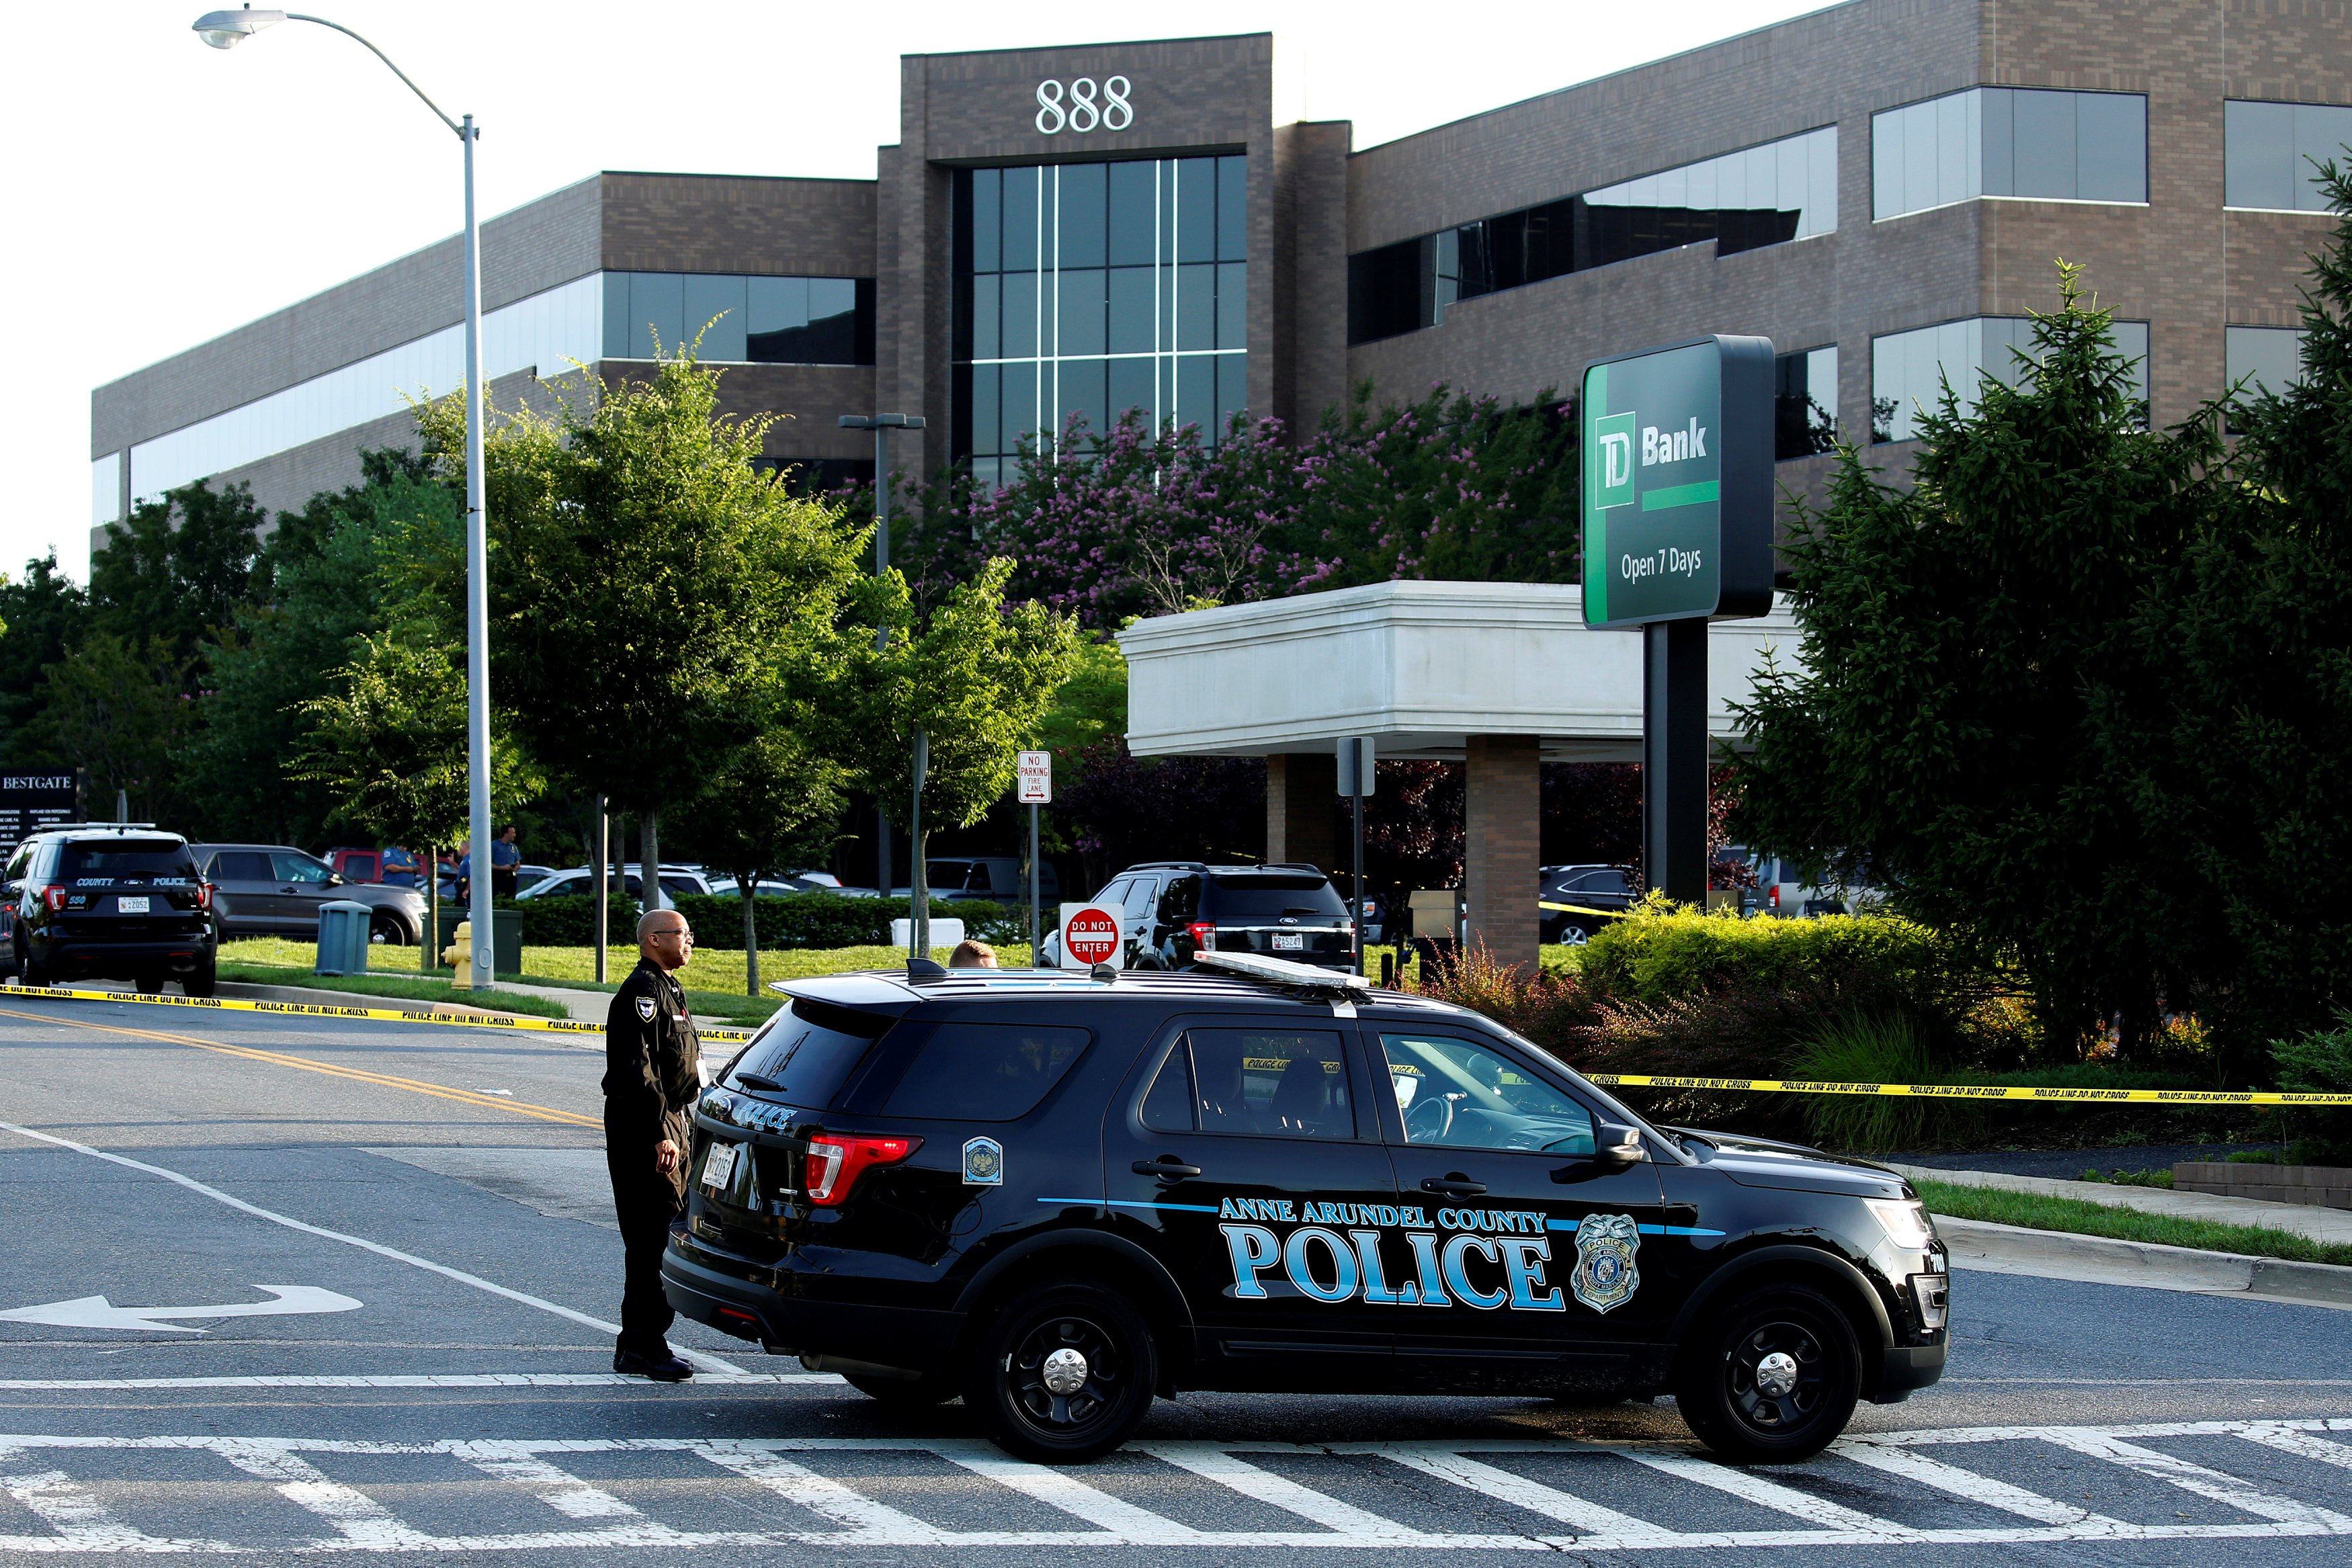 A police car blocks the road in front of the Capital Gazette a day after a gunman opened fire at the newspaper, killing five people and injuring several others in Annapolis, Maryland, U.S., June 29, 2018. REUTERS/Joshua Roberts